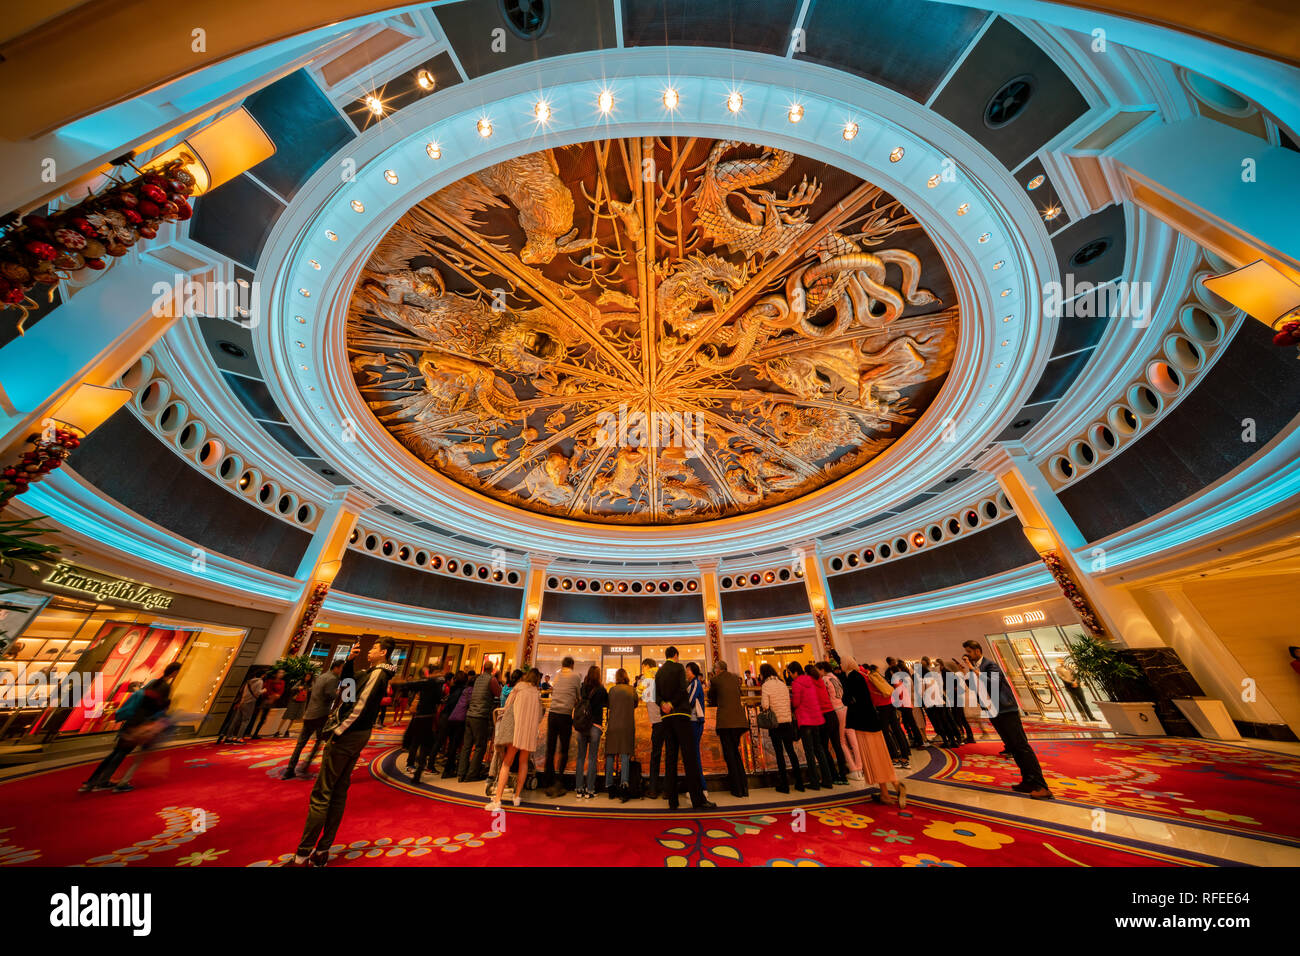 Macau, DEC 24: People waiting for the famous show - Tree of prosperity, Dragon of fortune of Wynn Macau on DEC 24, 2018 at Macau - Stock Image